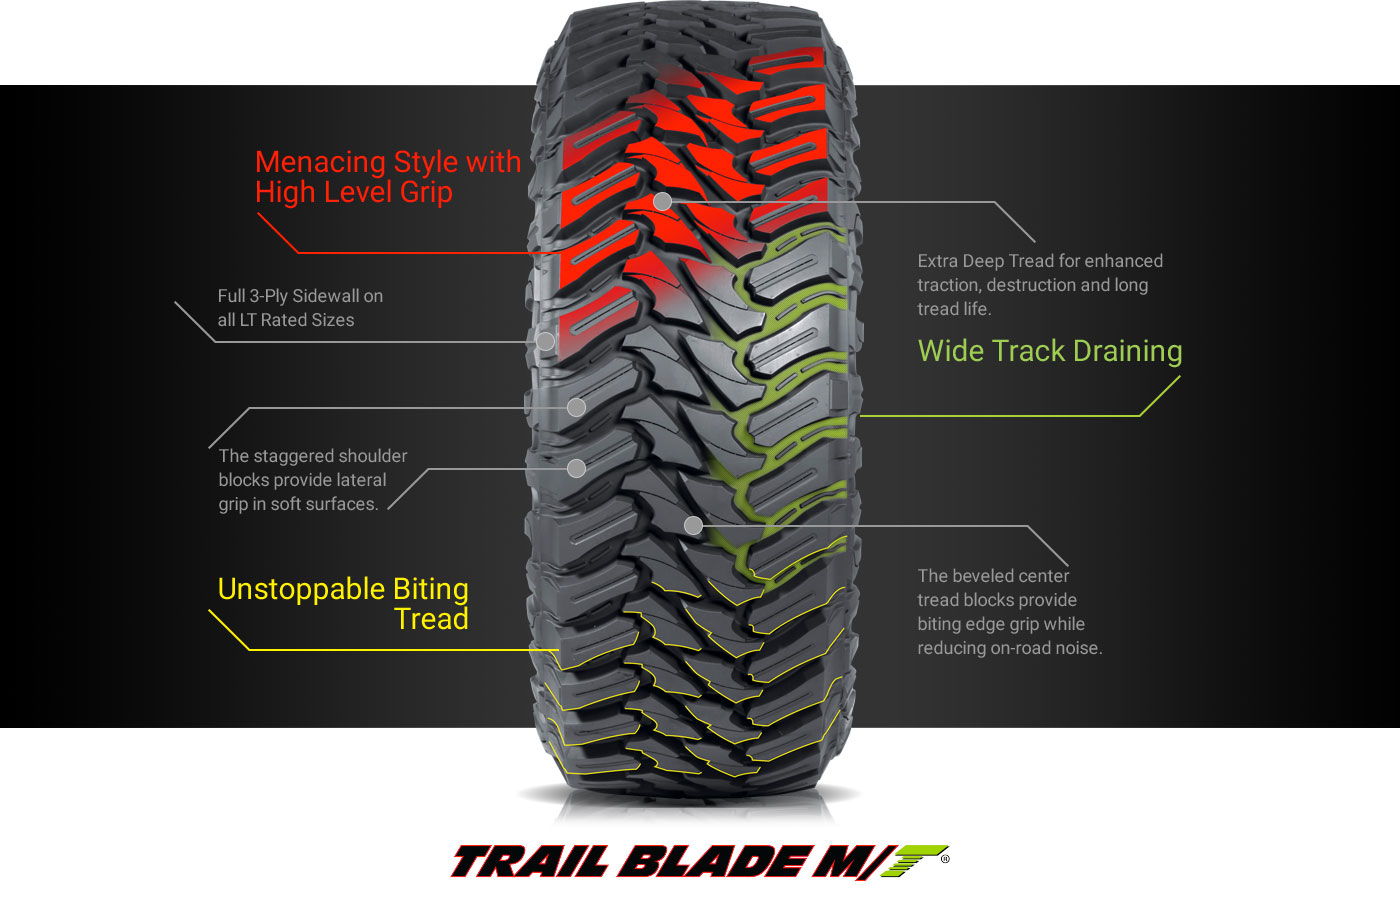 Trail Blade M/T Tire Technology